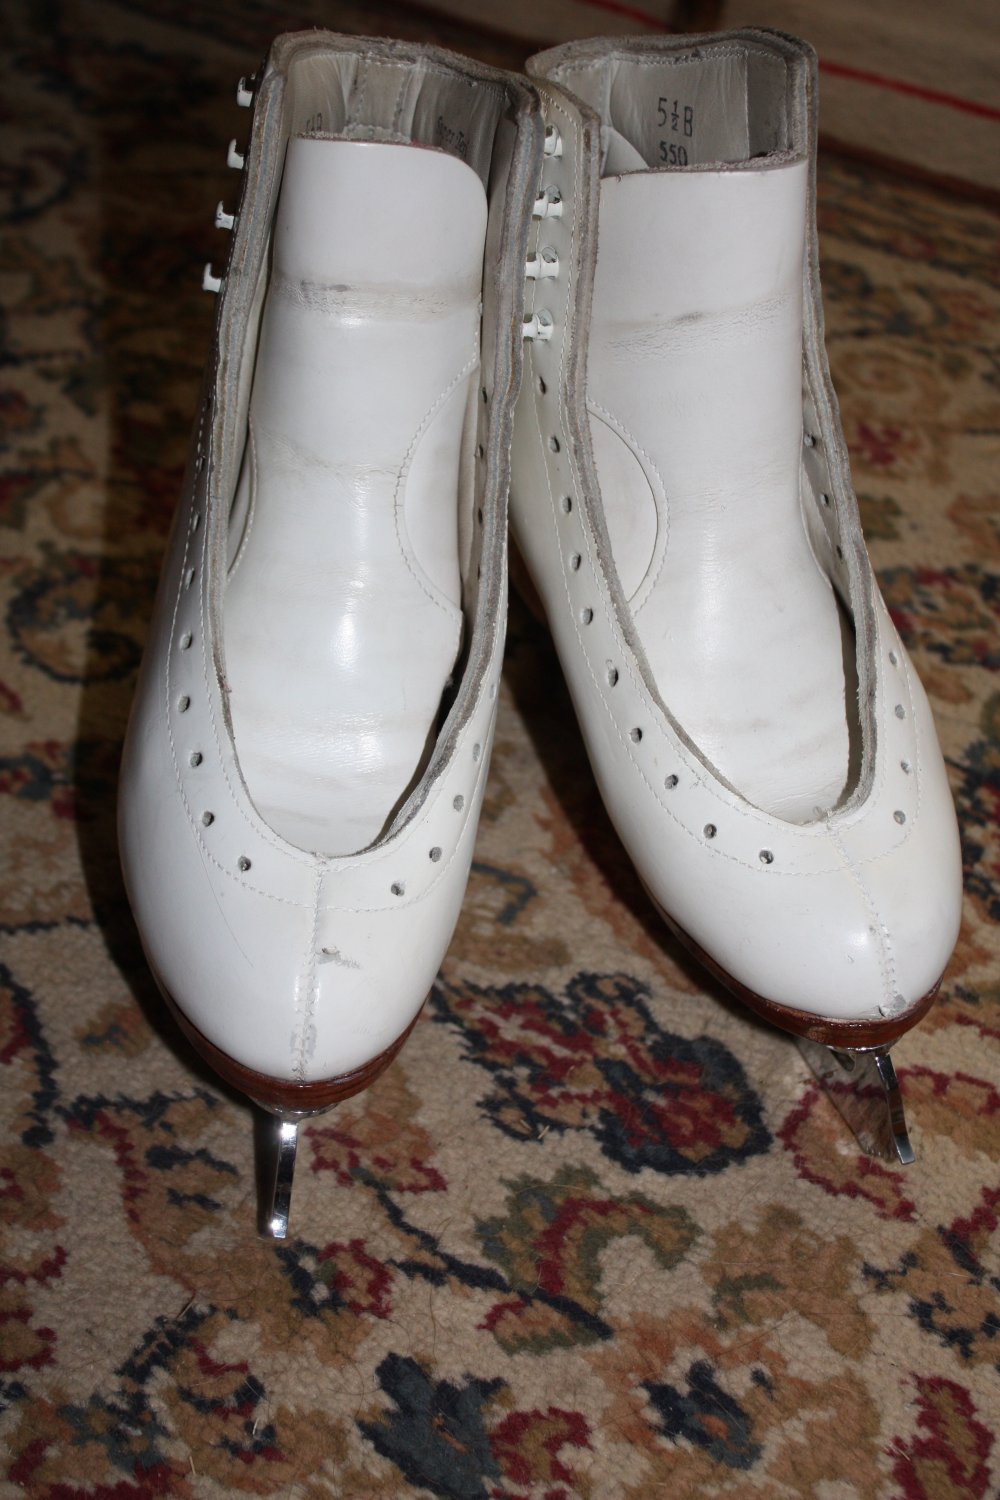 S.P. TERI DELUXE FIGURE SKATES SIZE 5 1/2 GENTLY USED